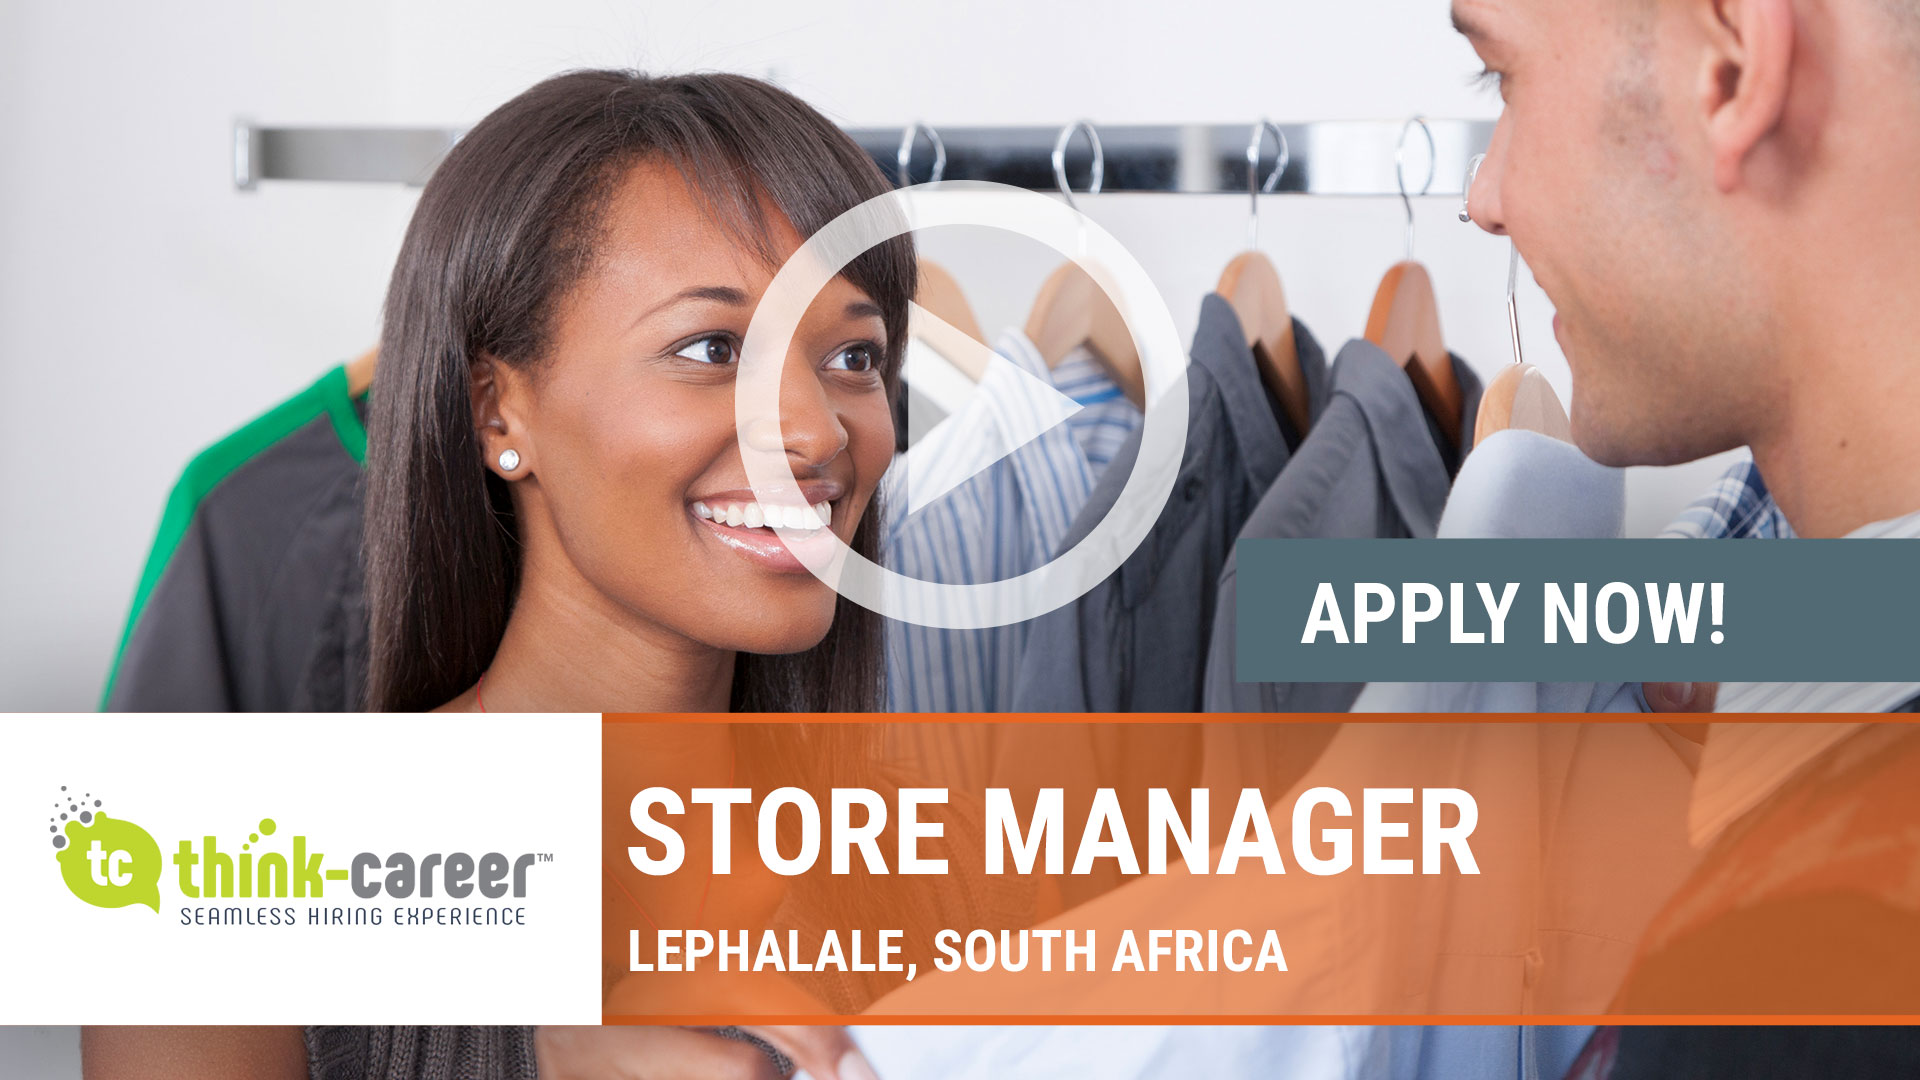 Watch our careers video for available job opening Store Manager in Lephalale, South Africa